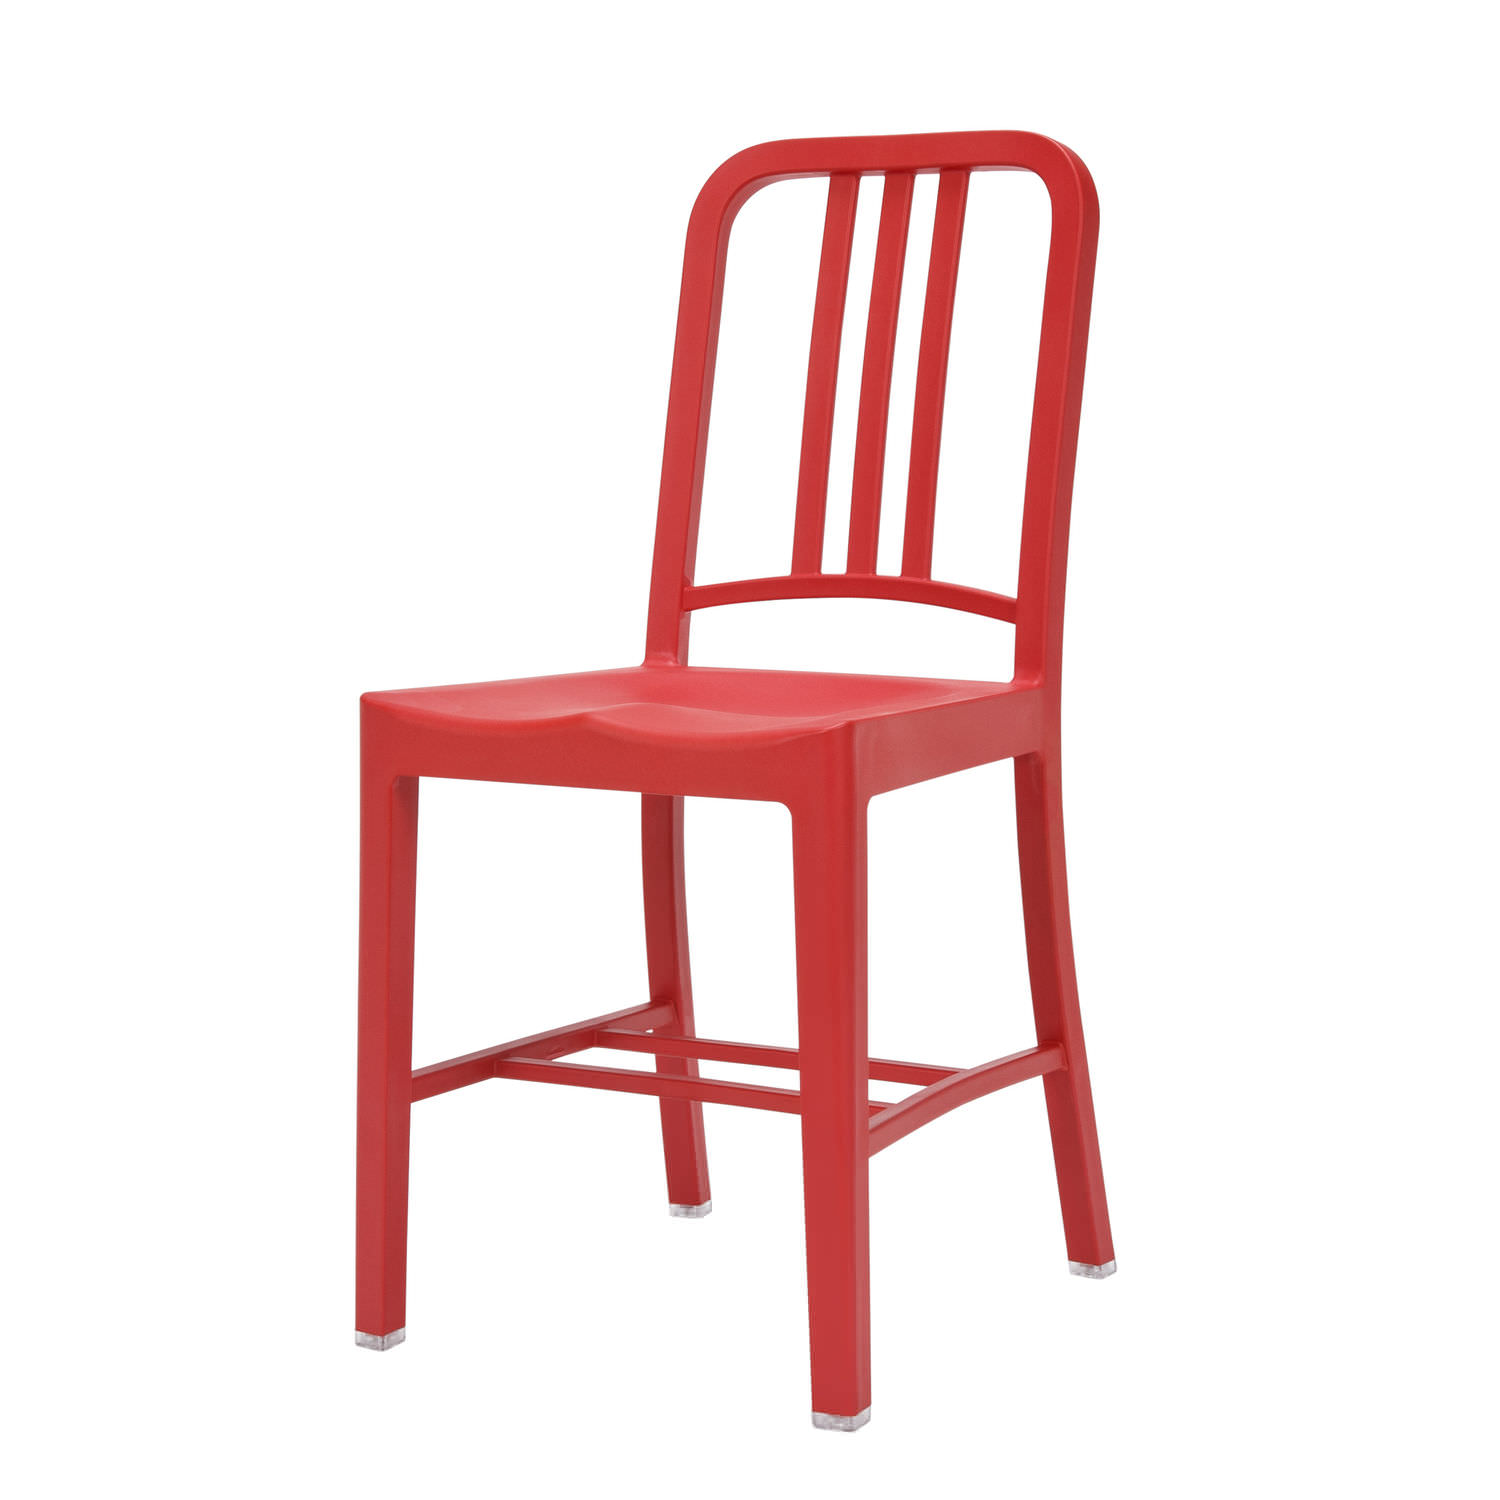 Classic chair made from recycled materials PET aluminium